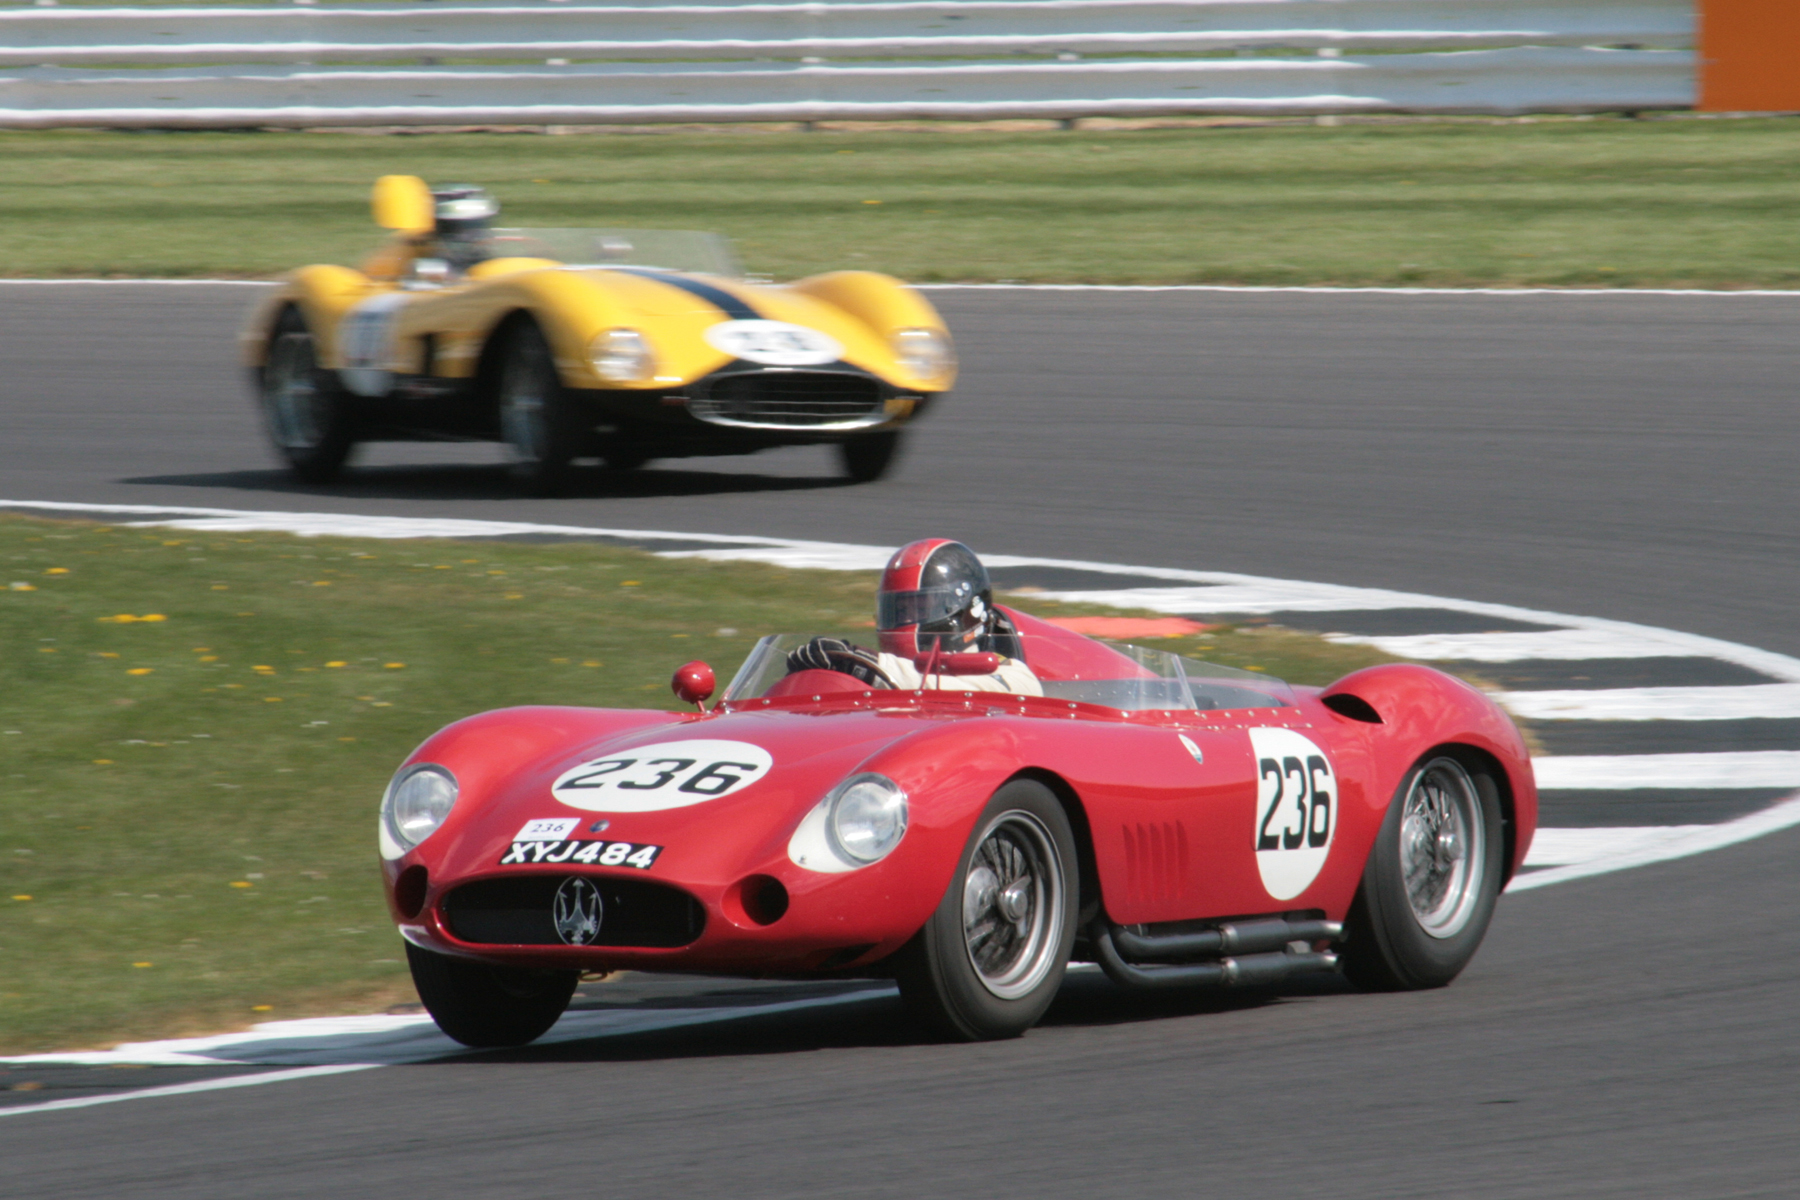 The Maserati now up to 2nd but the Ferrari behind has regained the track quickly.                                                Photo - John Turner